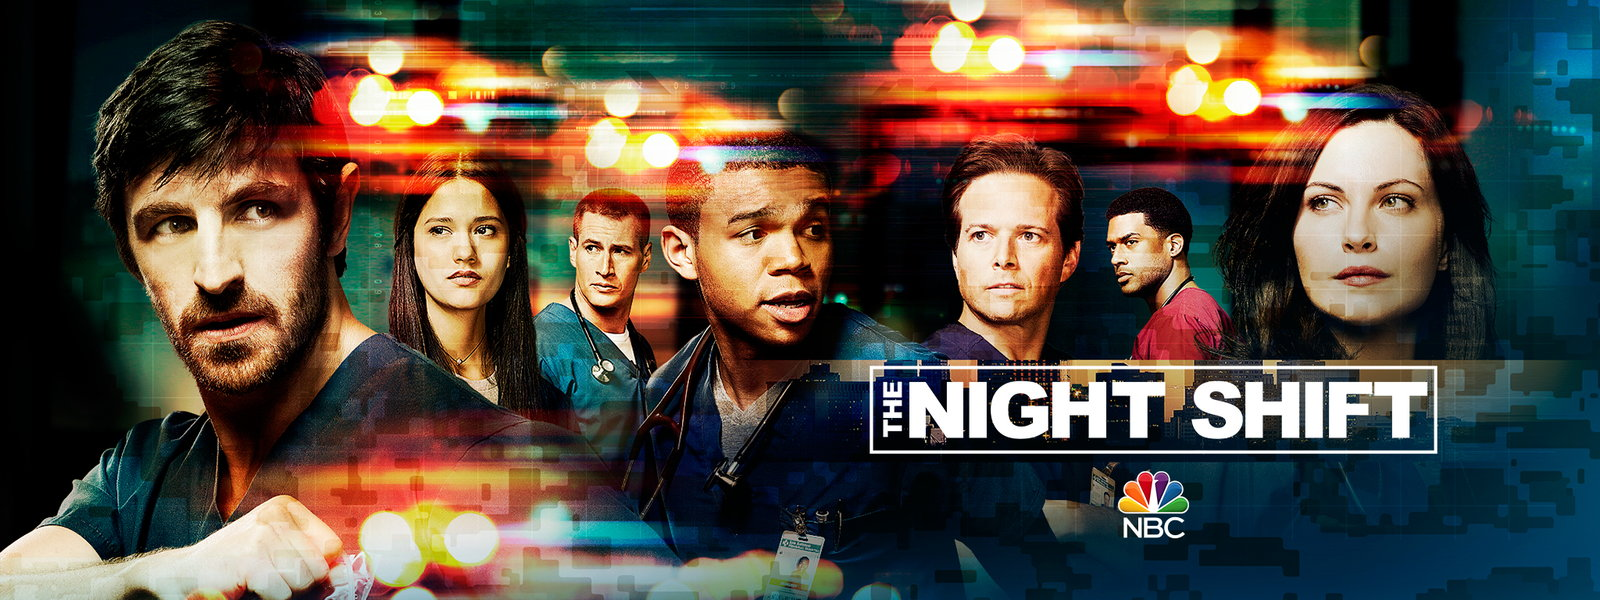 Download The Night Shift S01E06 Legendado AVI + RMVB  [Season Finale]